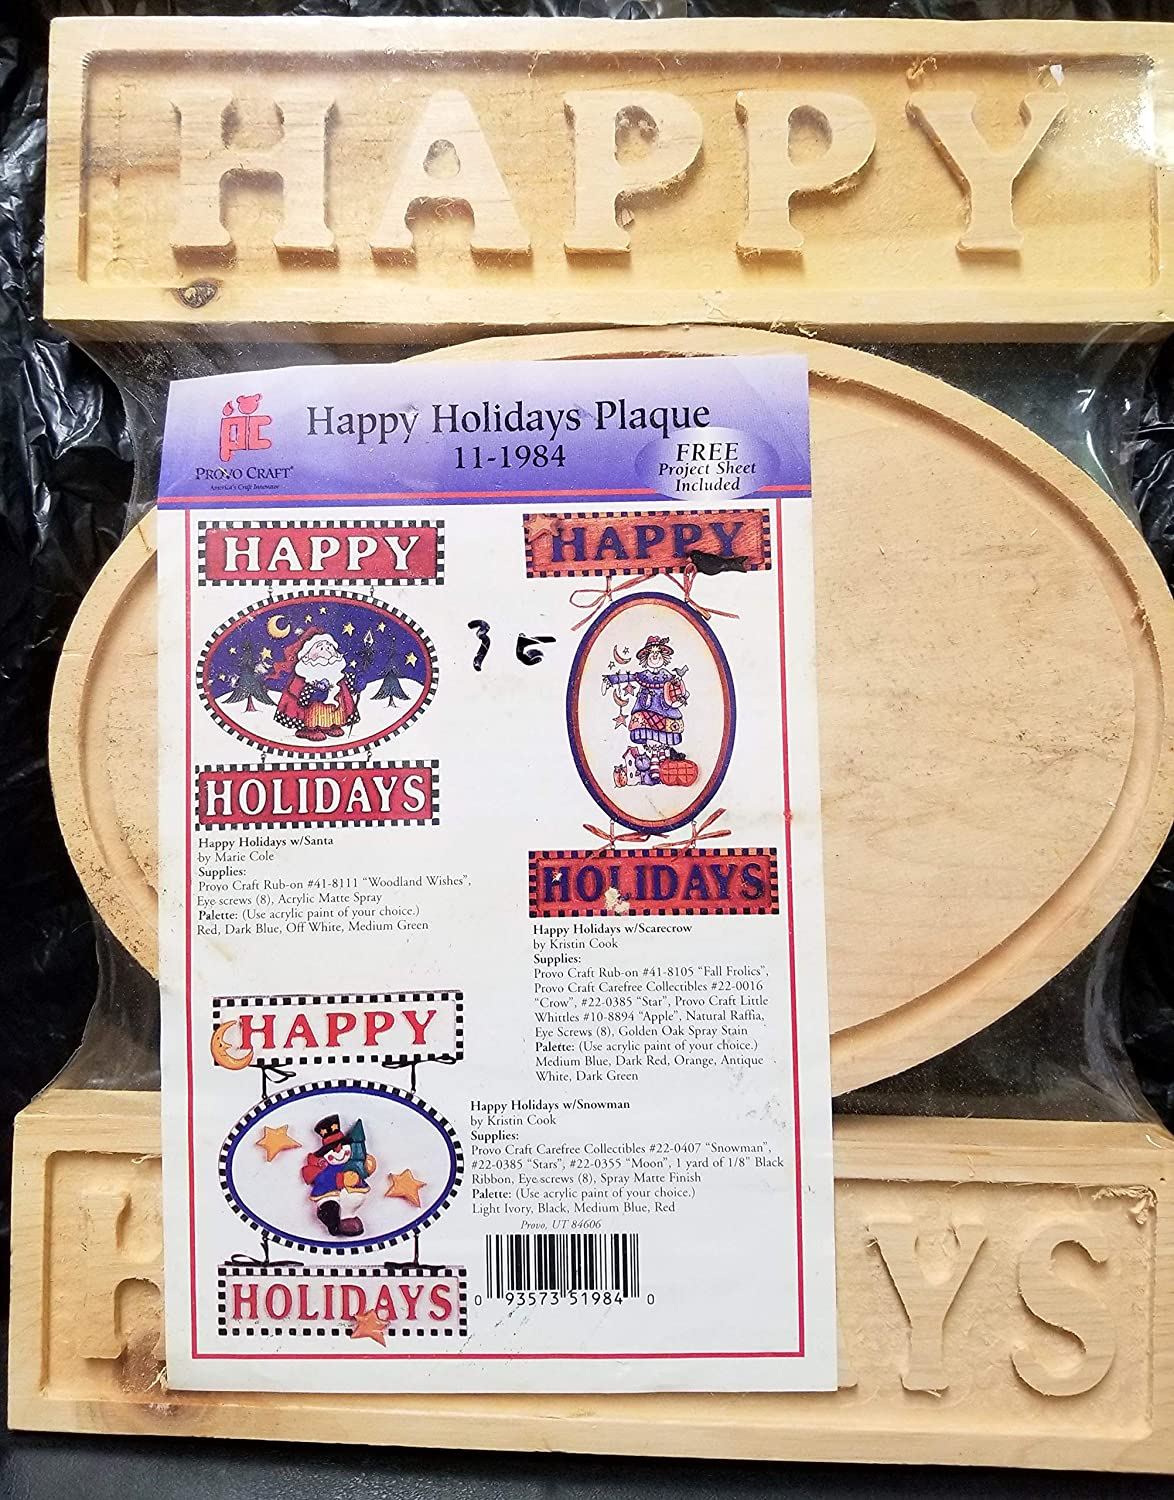 DreamPartyWorld Happy Holiday Plaque Wood Craft Kit DYI Christmas Decoration 3PCS Provo Craft